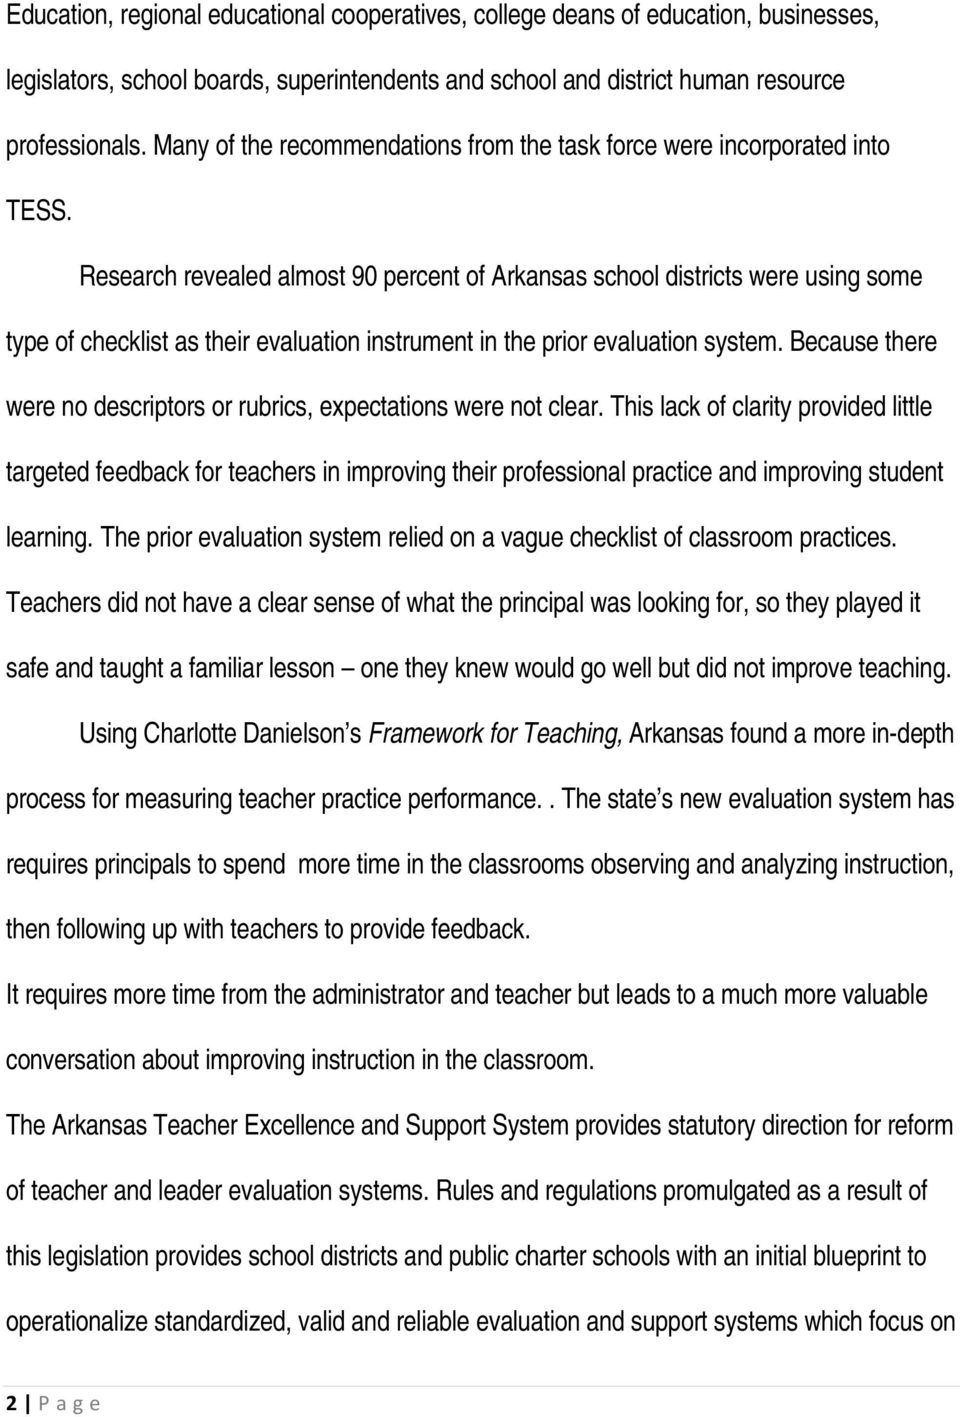 Research revealed almost 90 percent of Arkansas school districts were using some type of checklist as their evaluation instrument in the prior evaluation system.